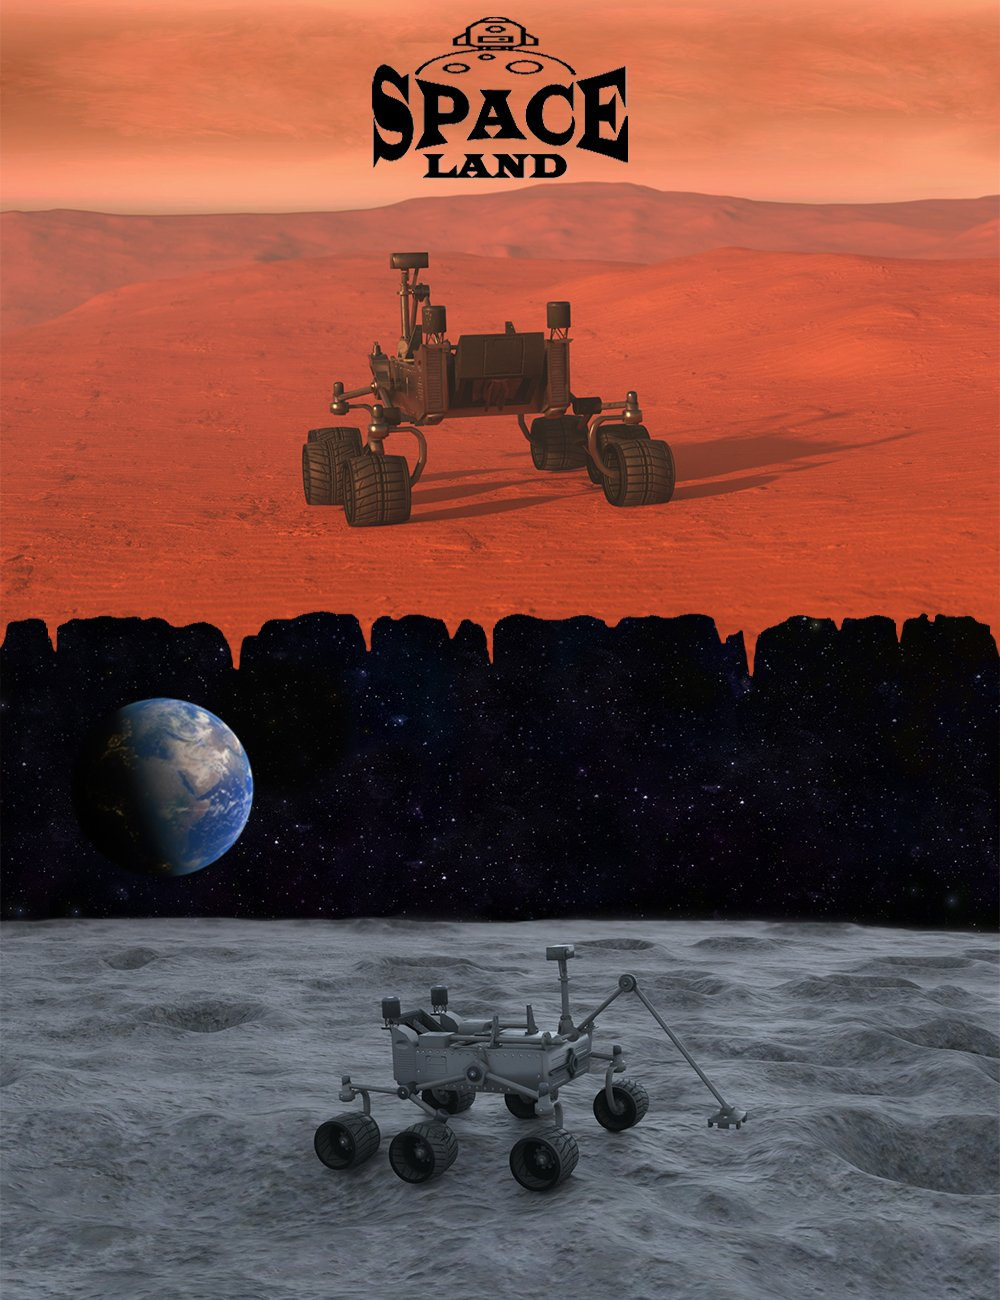 Space Land by: 3dLab, 3D Models by Daz 3D